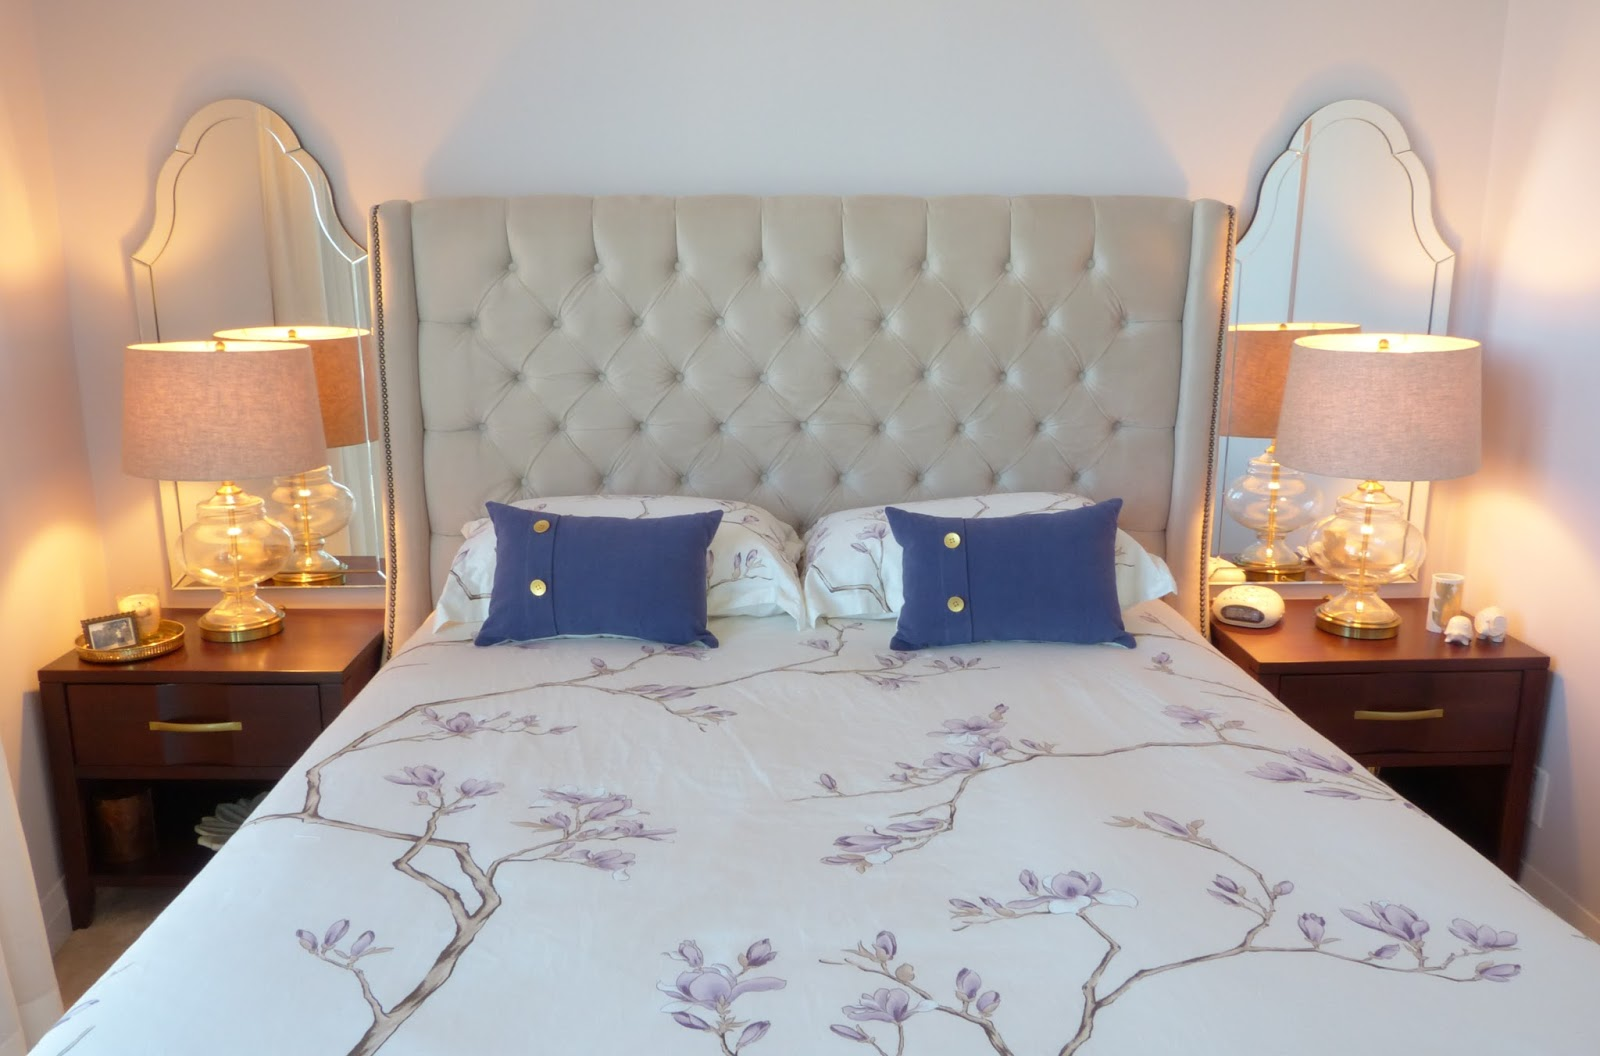 Using Mirrors Above Bedside Tables